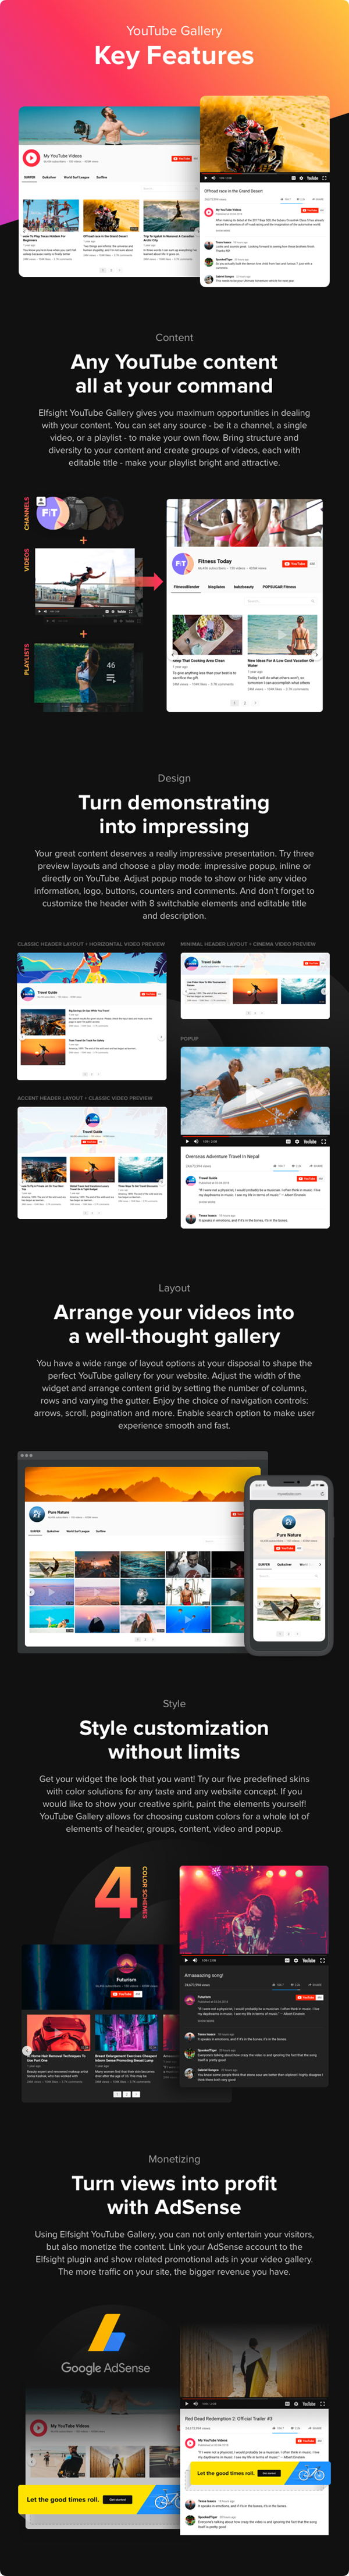 YouTube Gallery Features